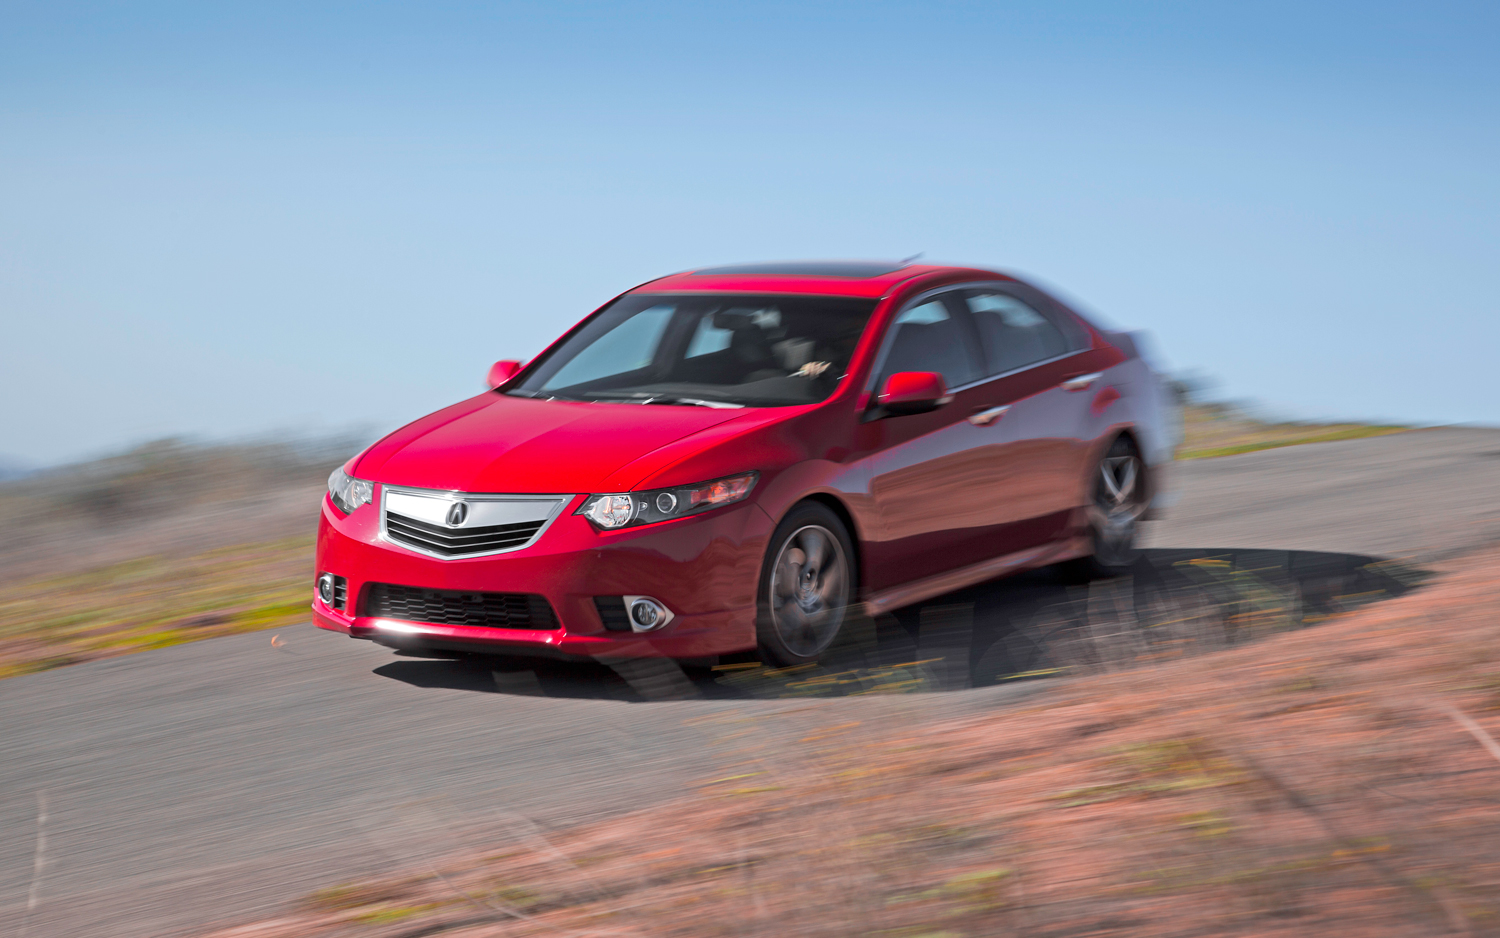 First Test Acura TSX Special Edition Speed Motor Trend - Acura tsx v6 for sale